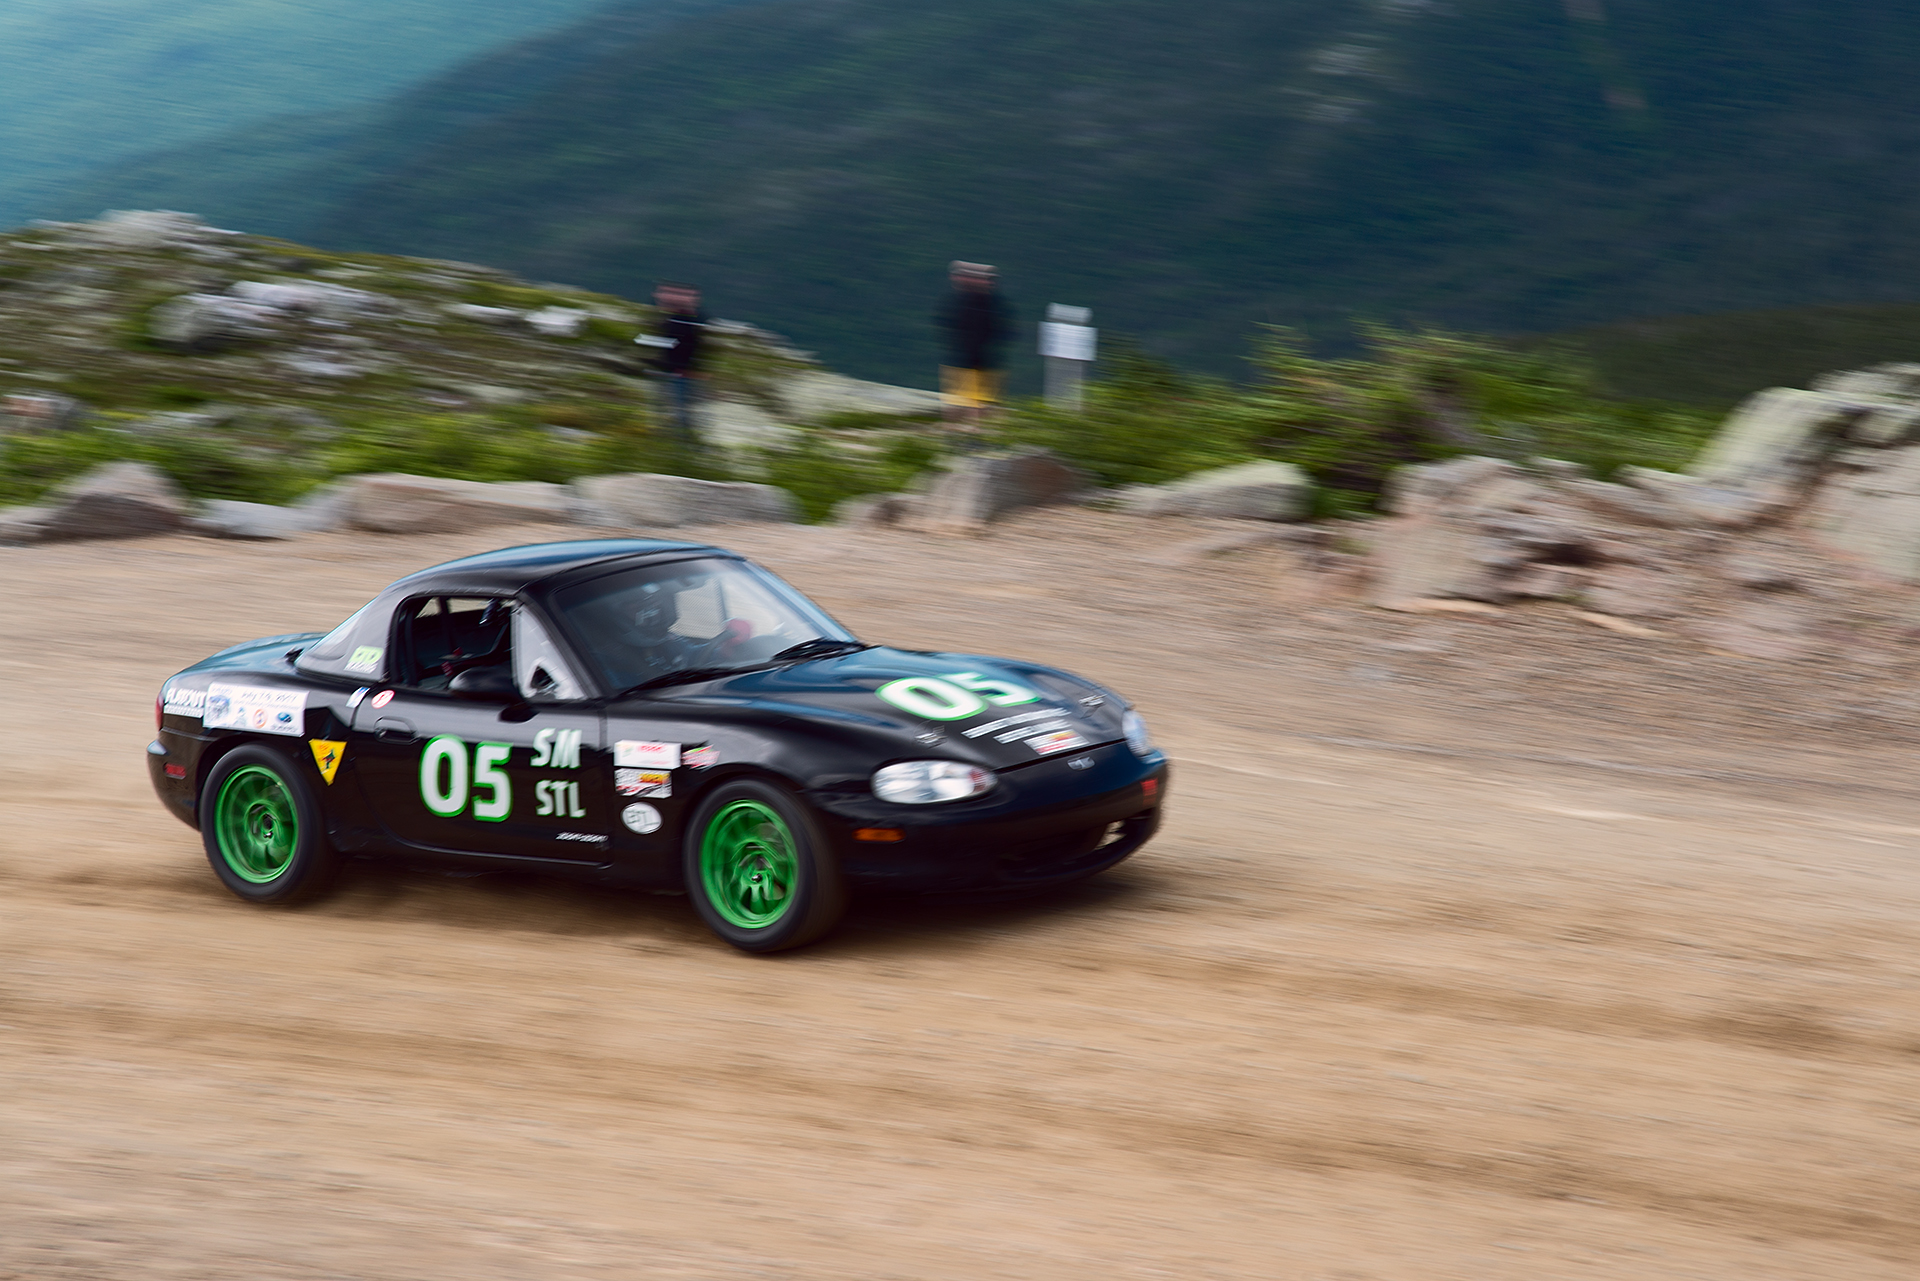 Car 05 at Climb to the Clouds 2017